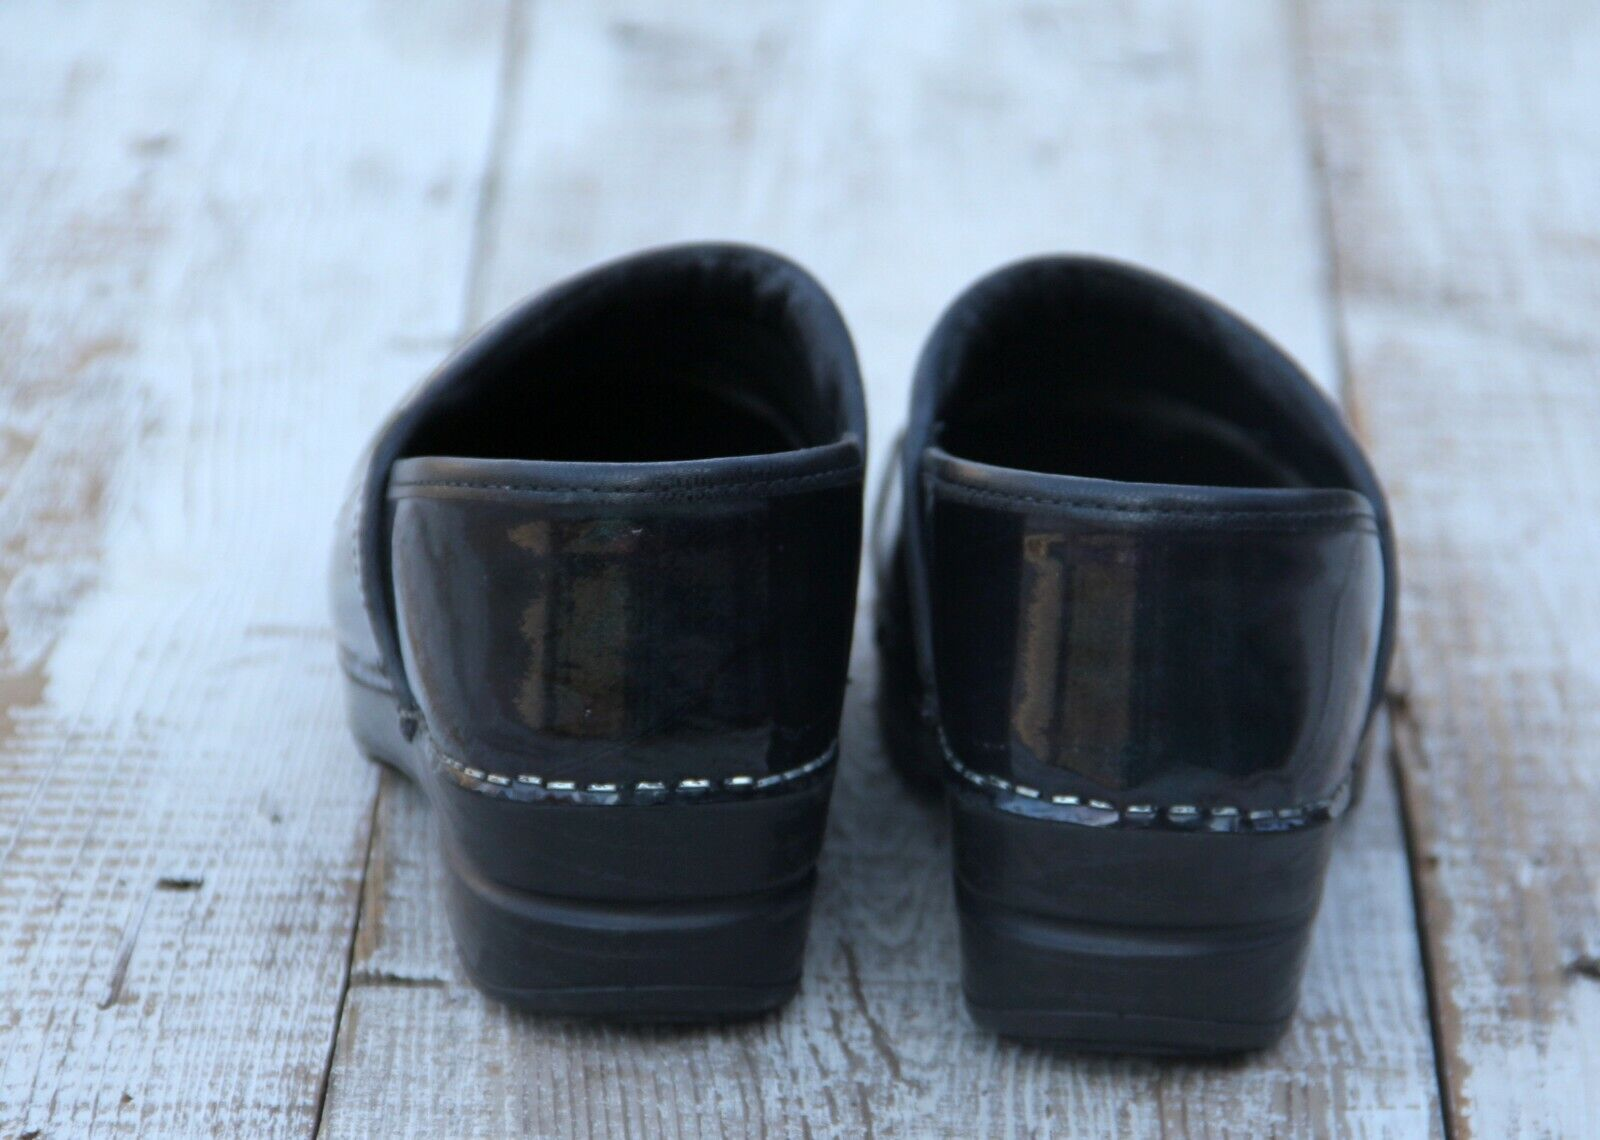 DANSKO SANITA Professional Stapled Nurse Clogs Shiny Green Black Black Black  39   8 EUC 134105